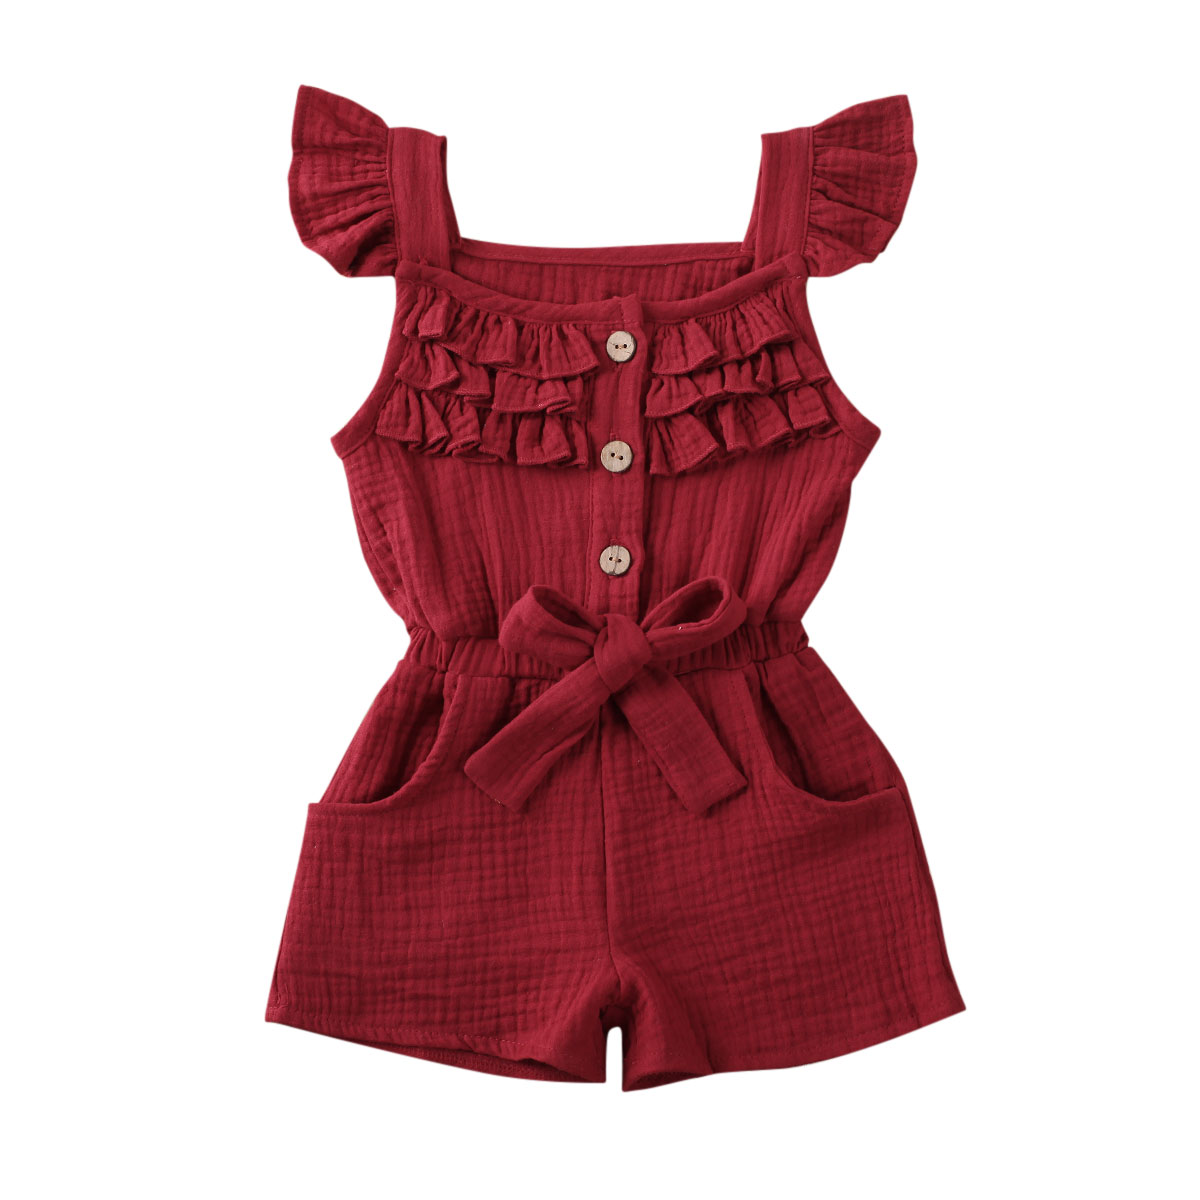 2020 Summer Toddler Infant Baby Girl Romper Sleeveless Ruffle Solid Pure Colors Buttons Sleeveless Jumpsuit Playsuit Cute